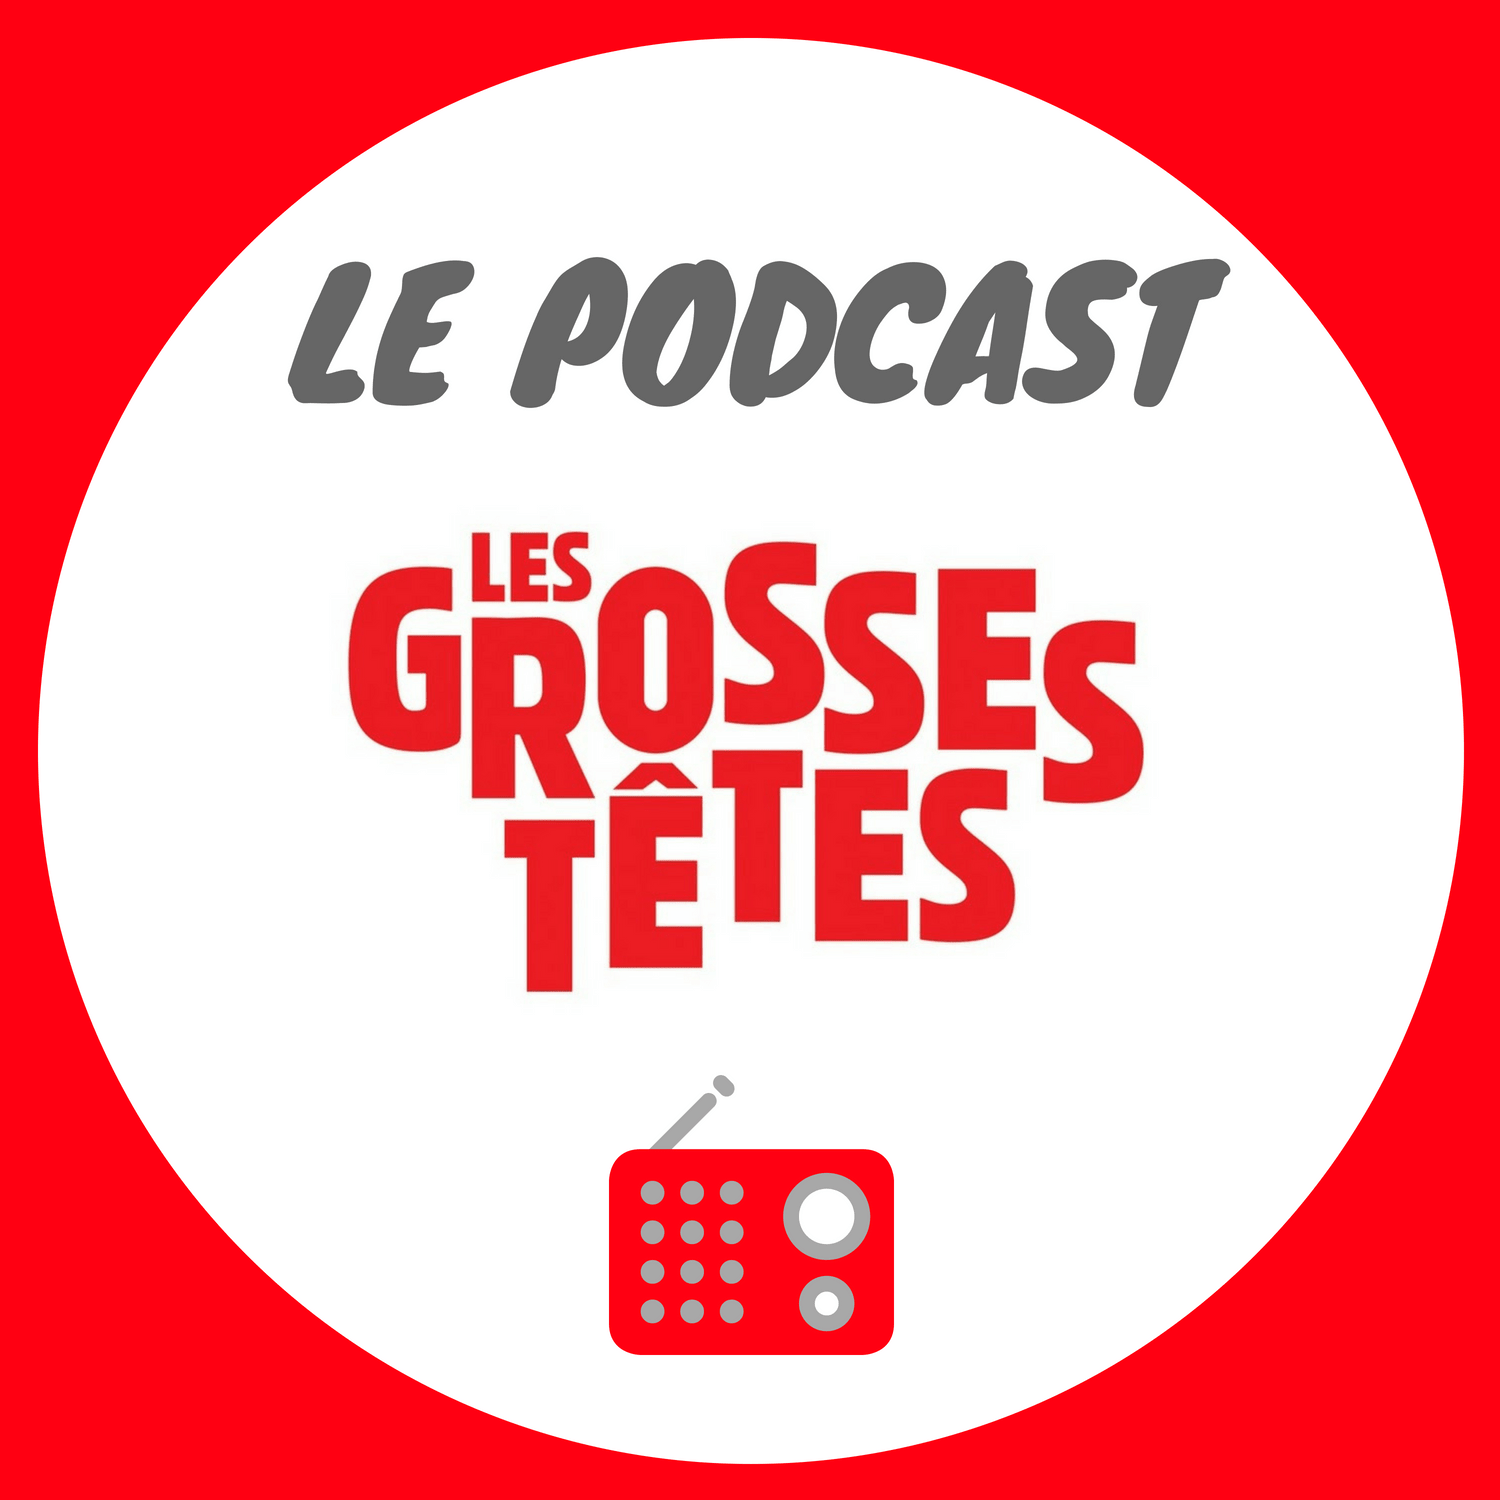 podcast grosses tetes